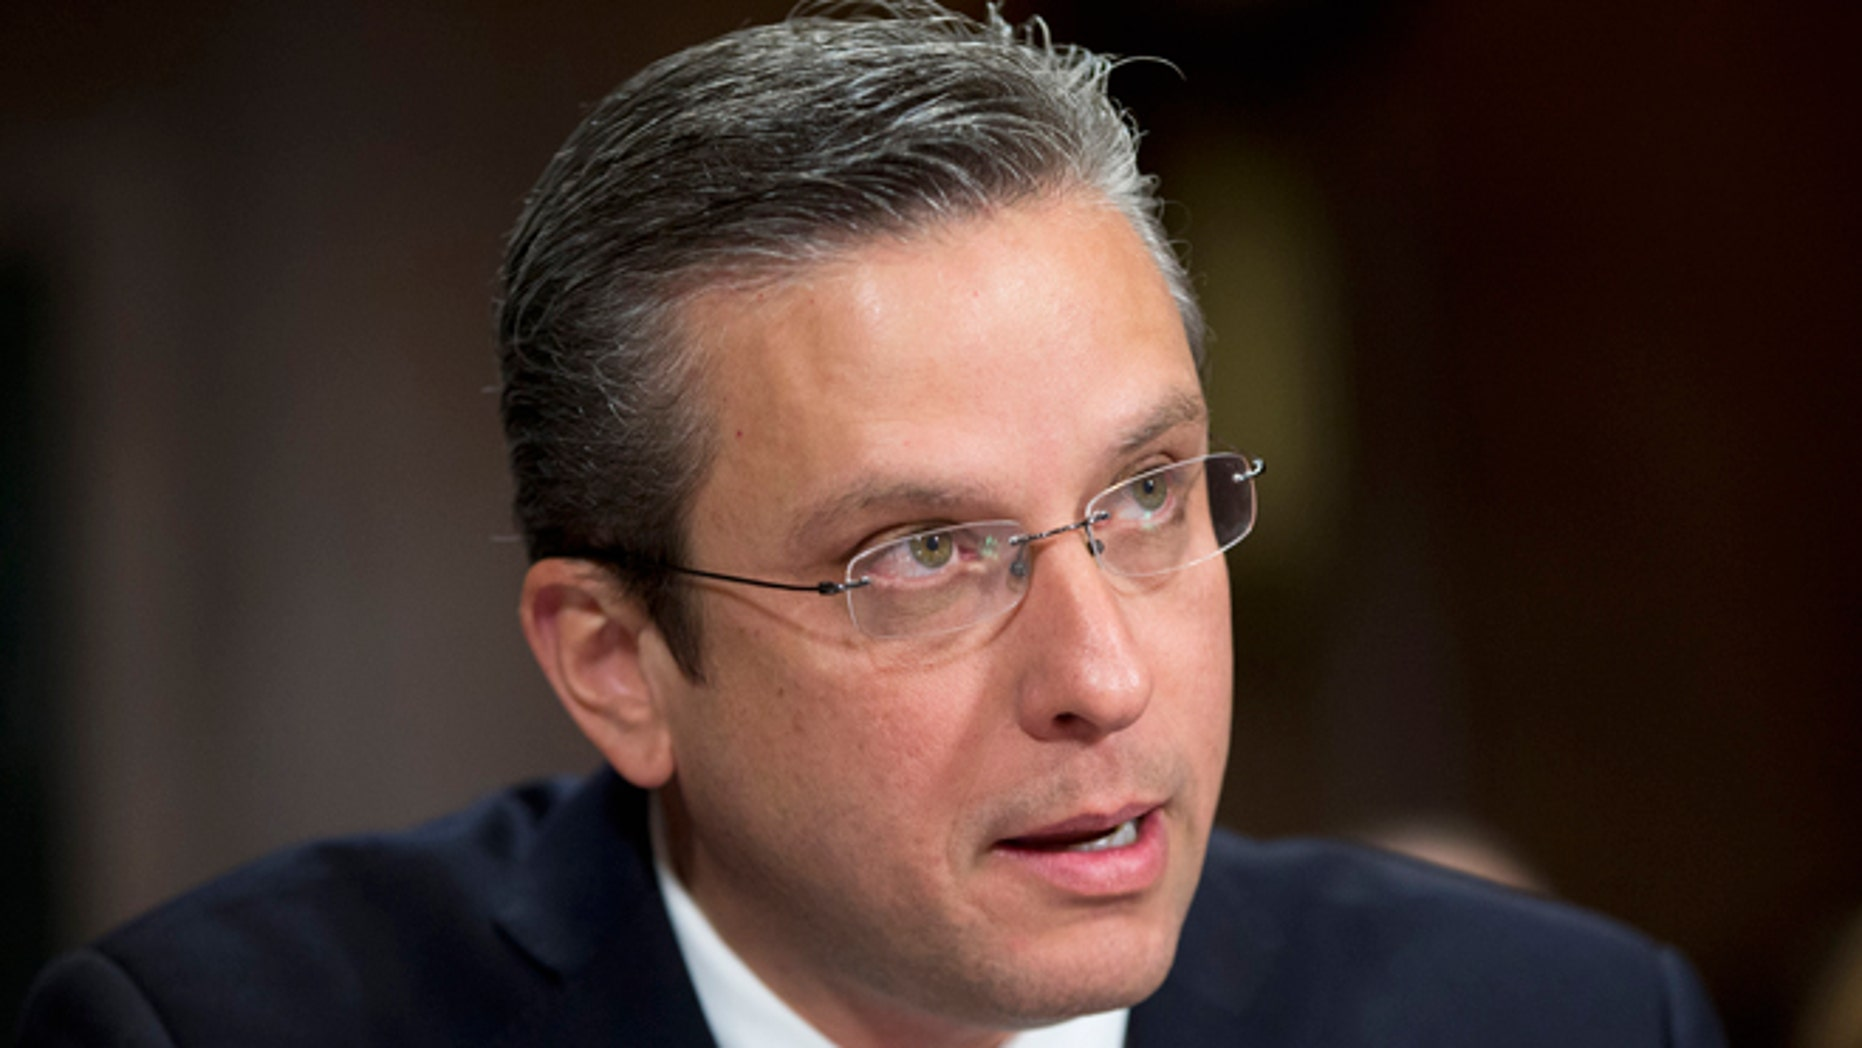 Puerto Rico Gov, Alejandro Javier Garcia Padilla testifies on Capitol Hill in Washington, Tuesday, Dec. 1, 2015, before the Senate Judiciary Committee hearing on Puerto Rico's fiscal problems. Puerto Rico and its debt crisis takes center stage in Congress as its governor testifies before a Senate panel about the U.S. commonwealth's financial woes and the demands of creditors.(AP Photo/Pablo Martinez Monsivais)